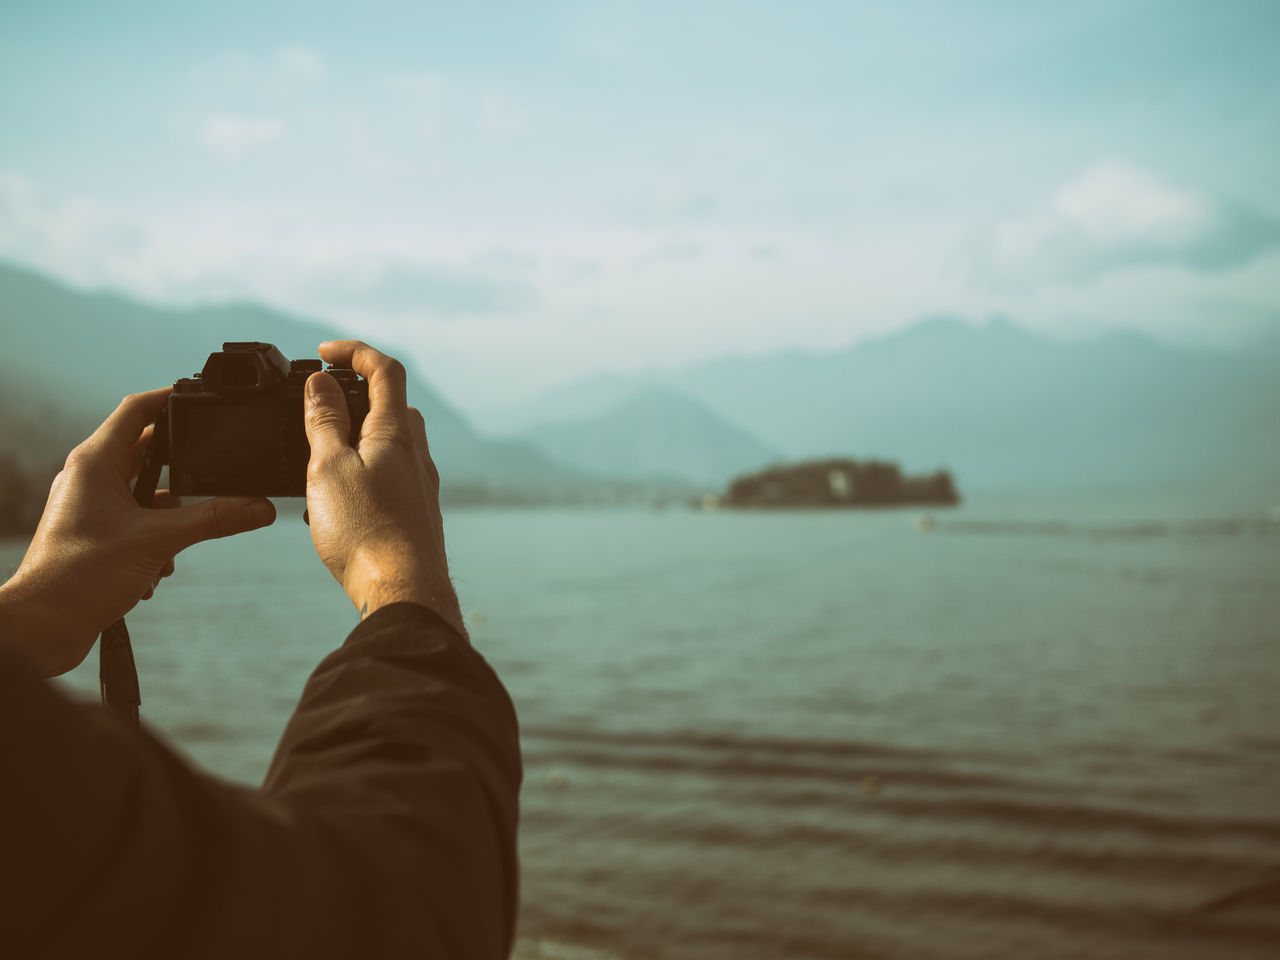 Beauty In Nature Camera Camera - Photographic Equipment Hand Lake Landscape Light Light And Shadow Men Nature Nature Photography One Person Stresa Sunlight Sunrise Sunset Water Young Adult Young Men